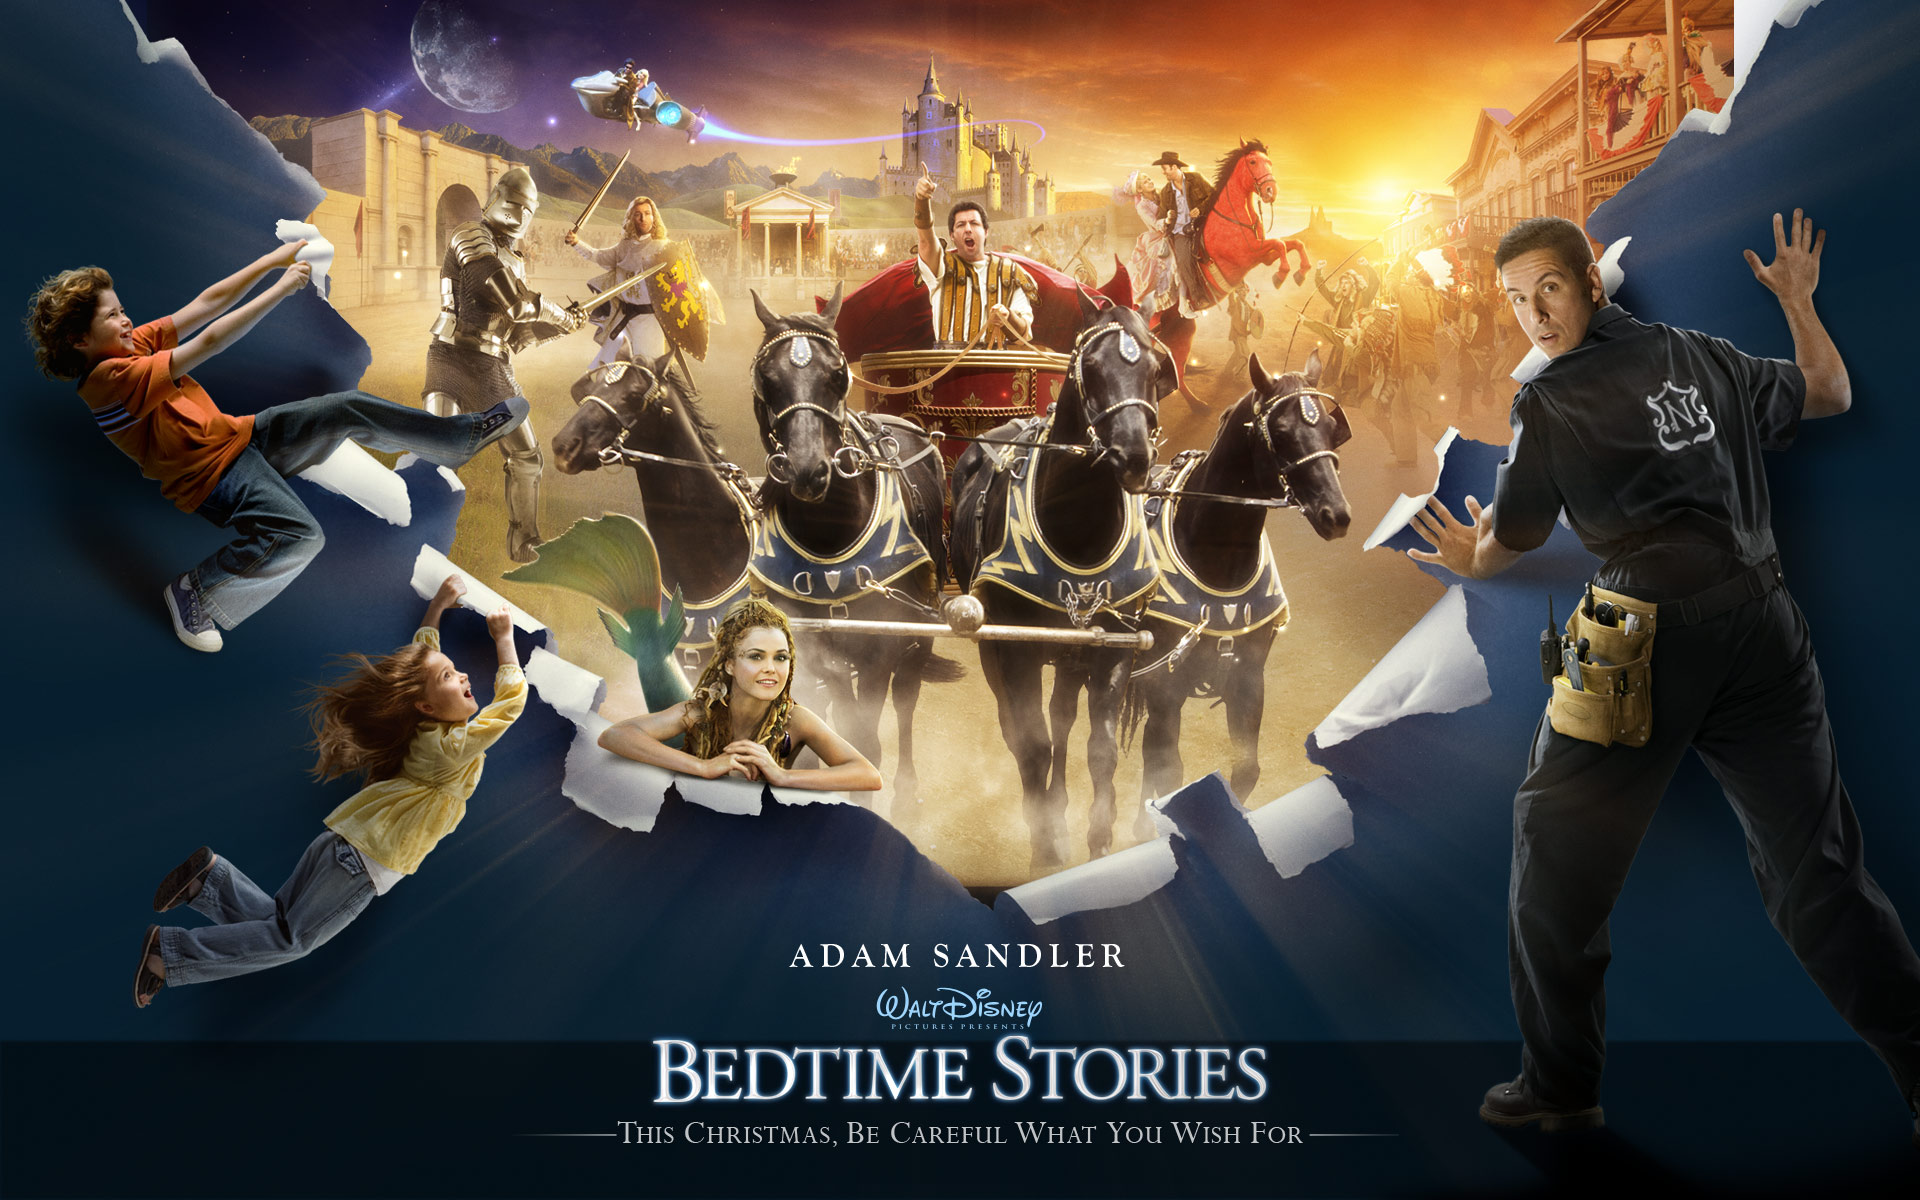 Adam sandler bedtime stories